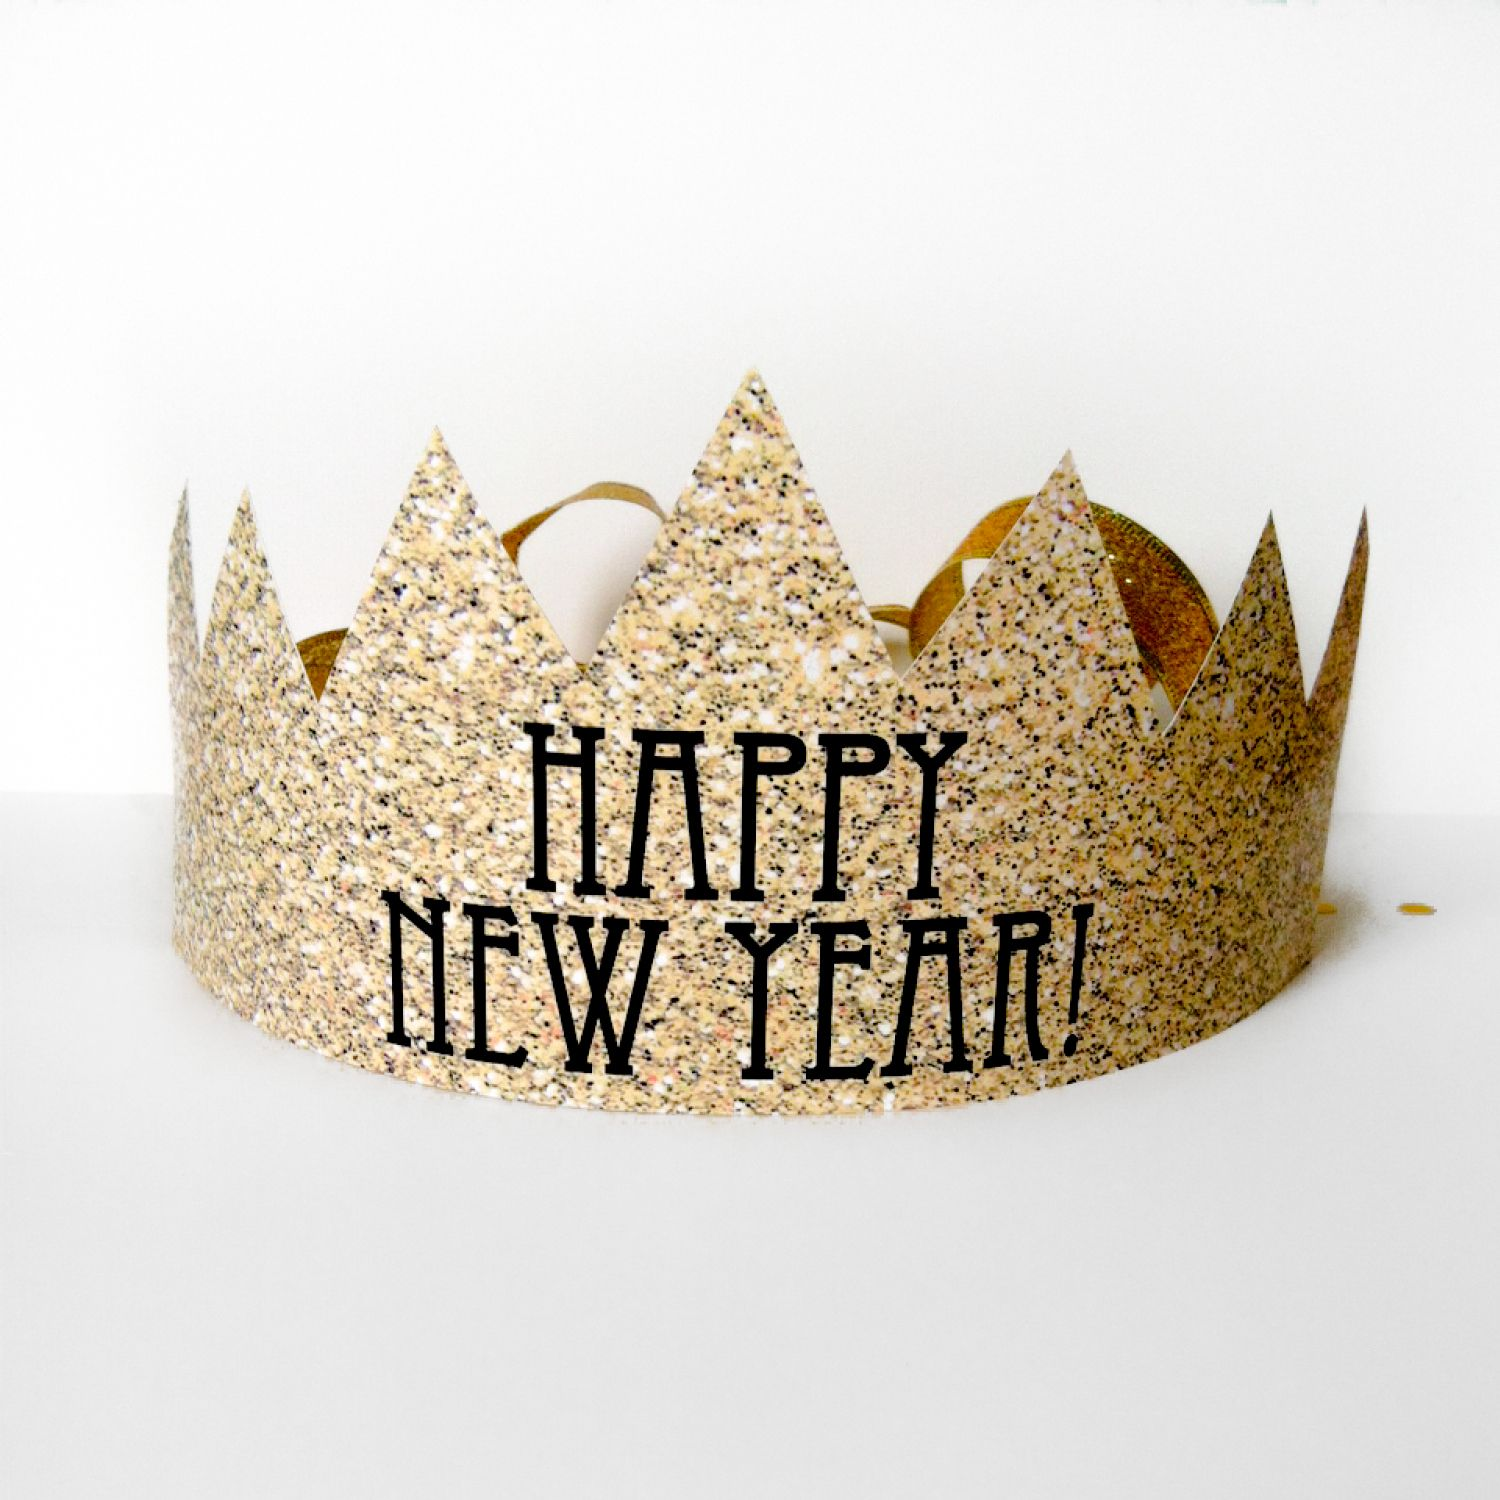 New years crown New year's eve crafts, New years decorations